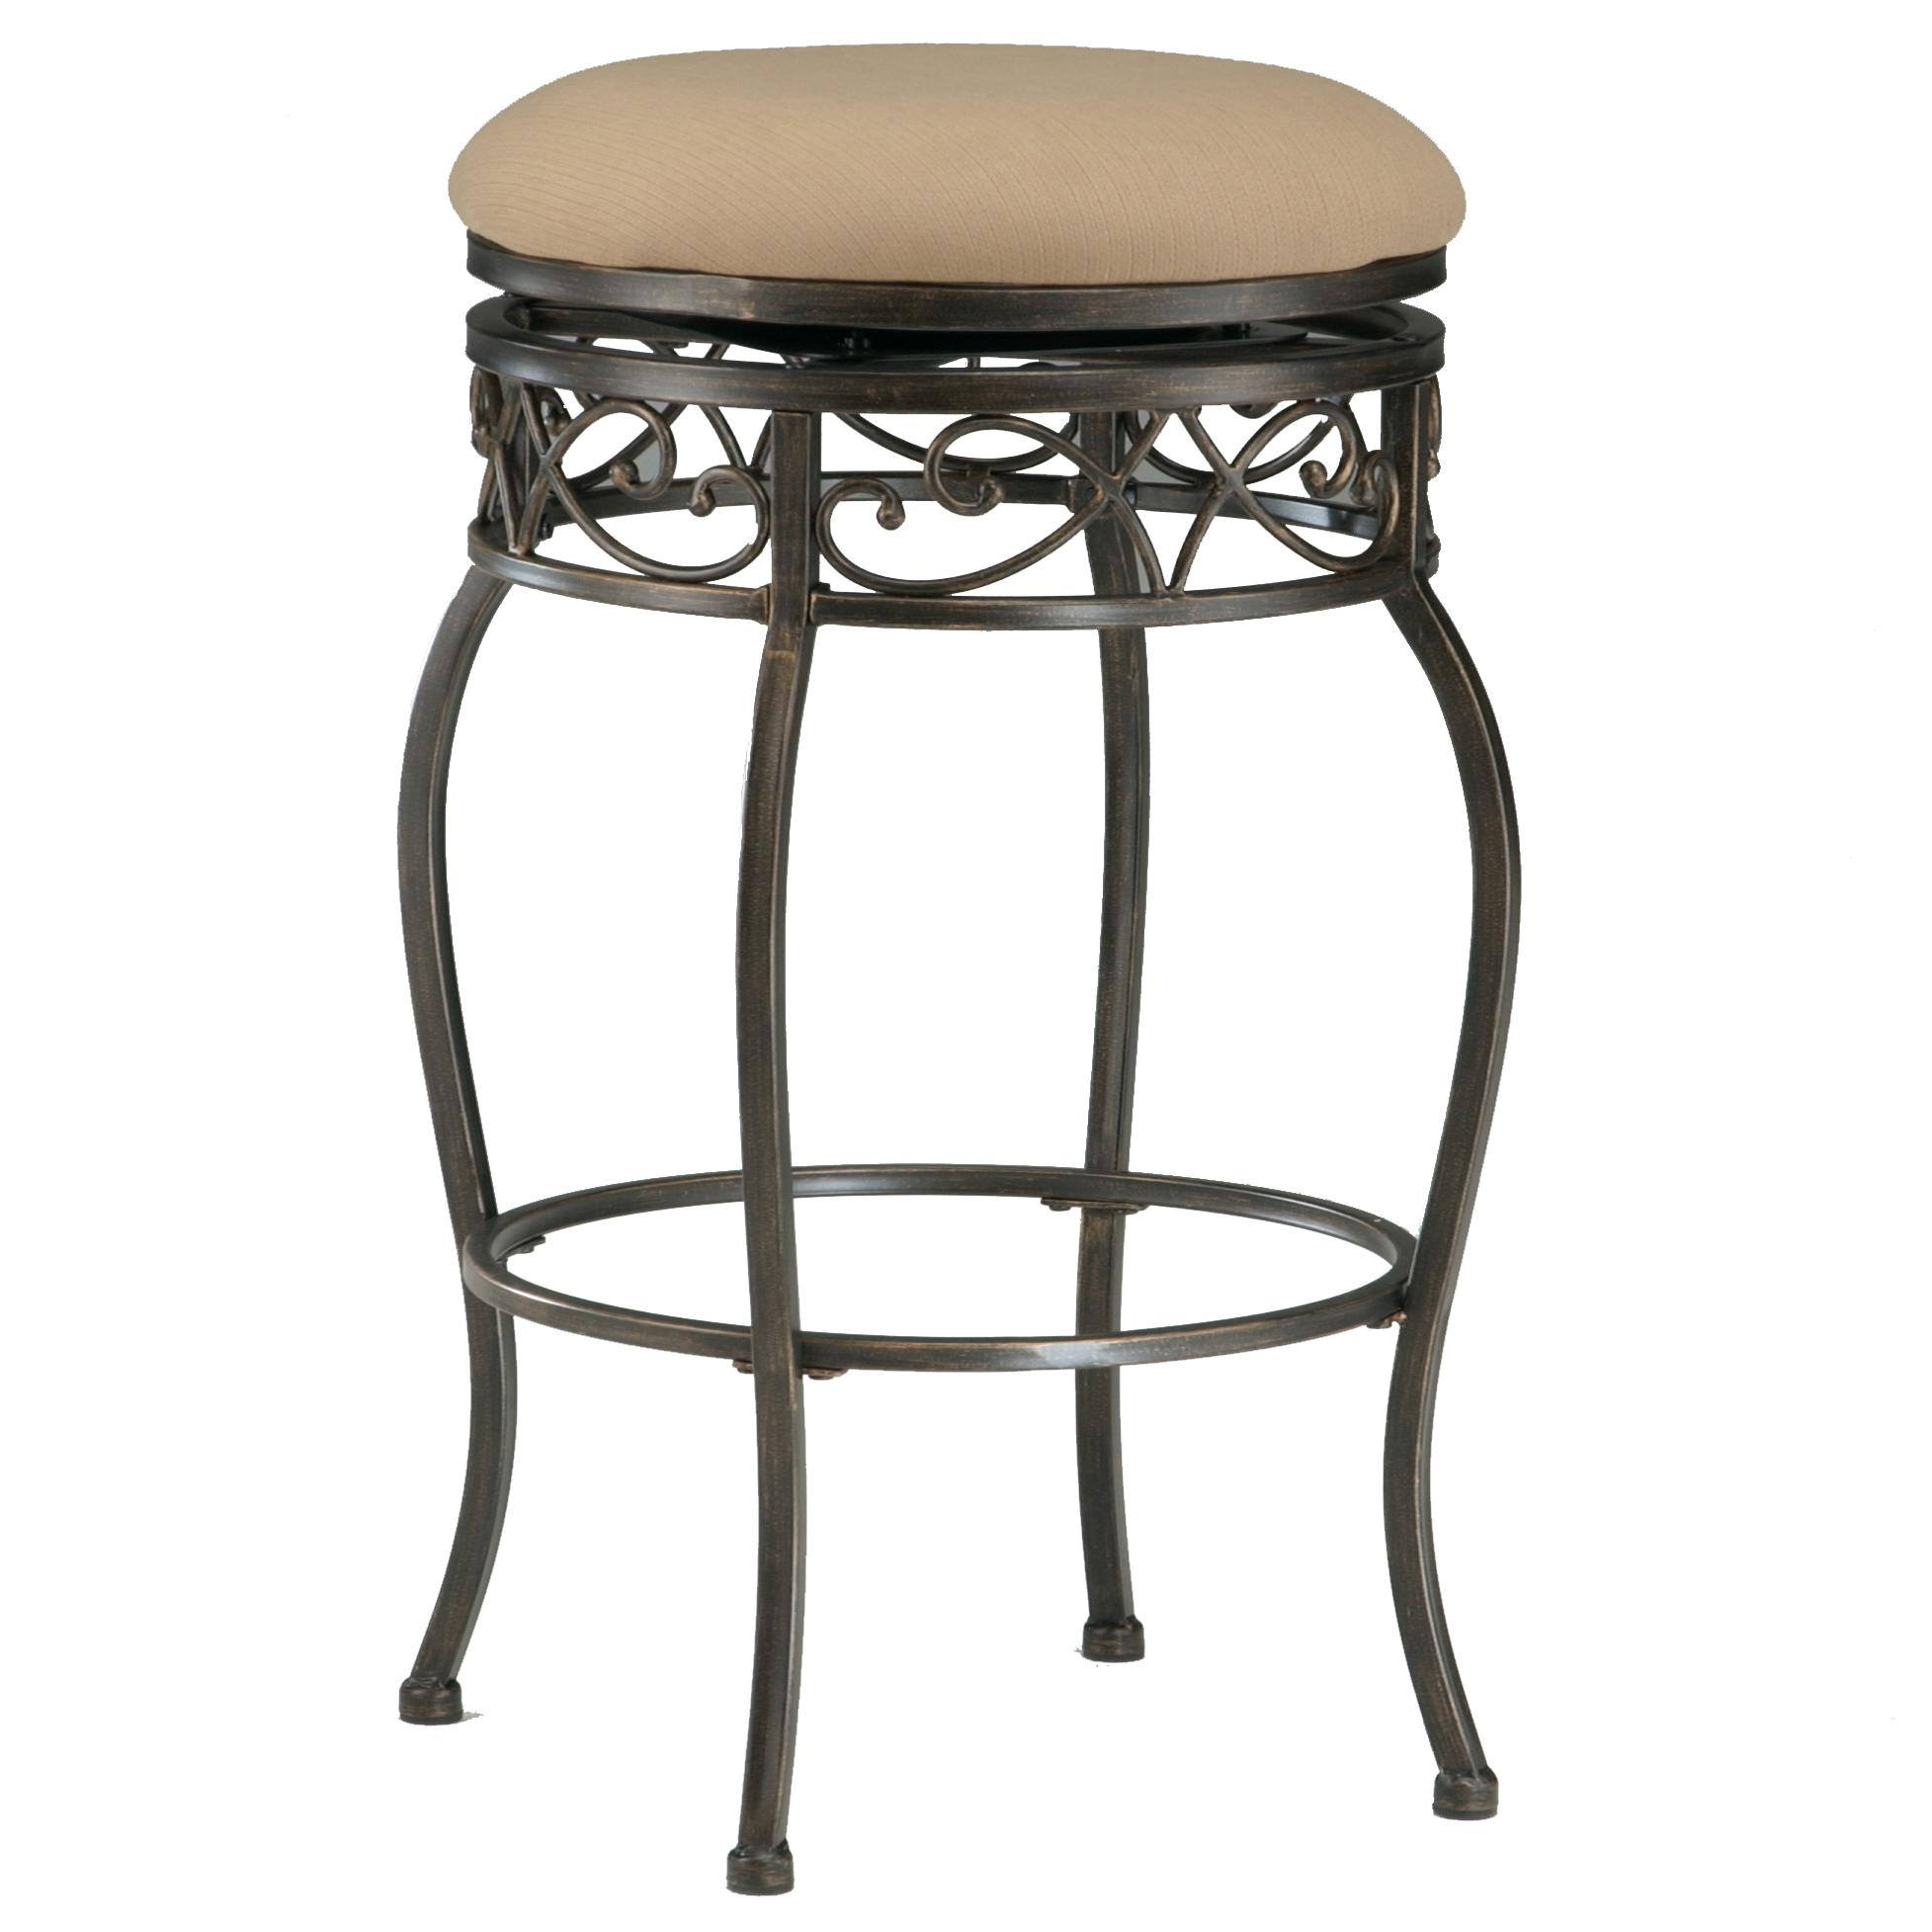 26quot Backless Lincoln Swivel Counter Stool by Hillsdale  : products2Fhillsdale2Fcolor2Fbackless20bar20stools4336 827 b from www.wolffurniture.com size 1955 x 1955 jpeg 174kB